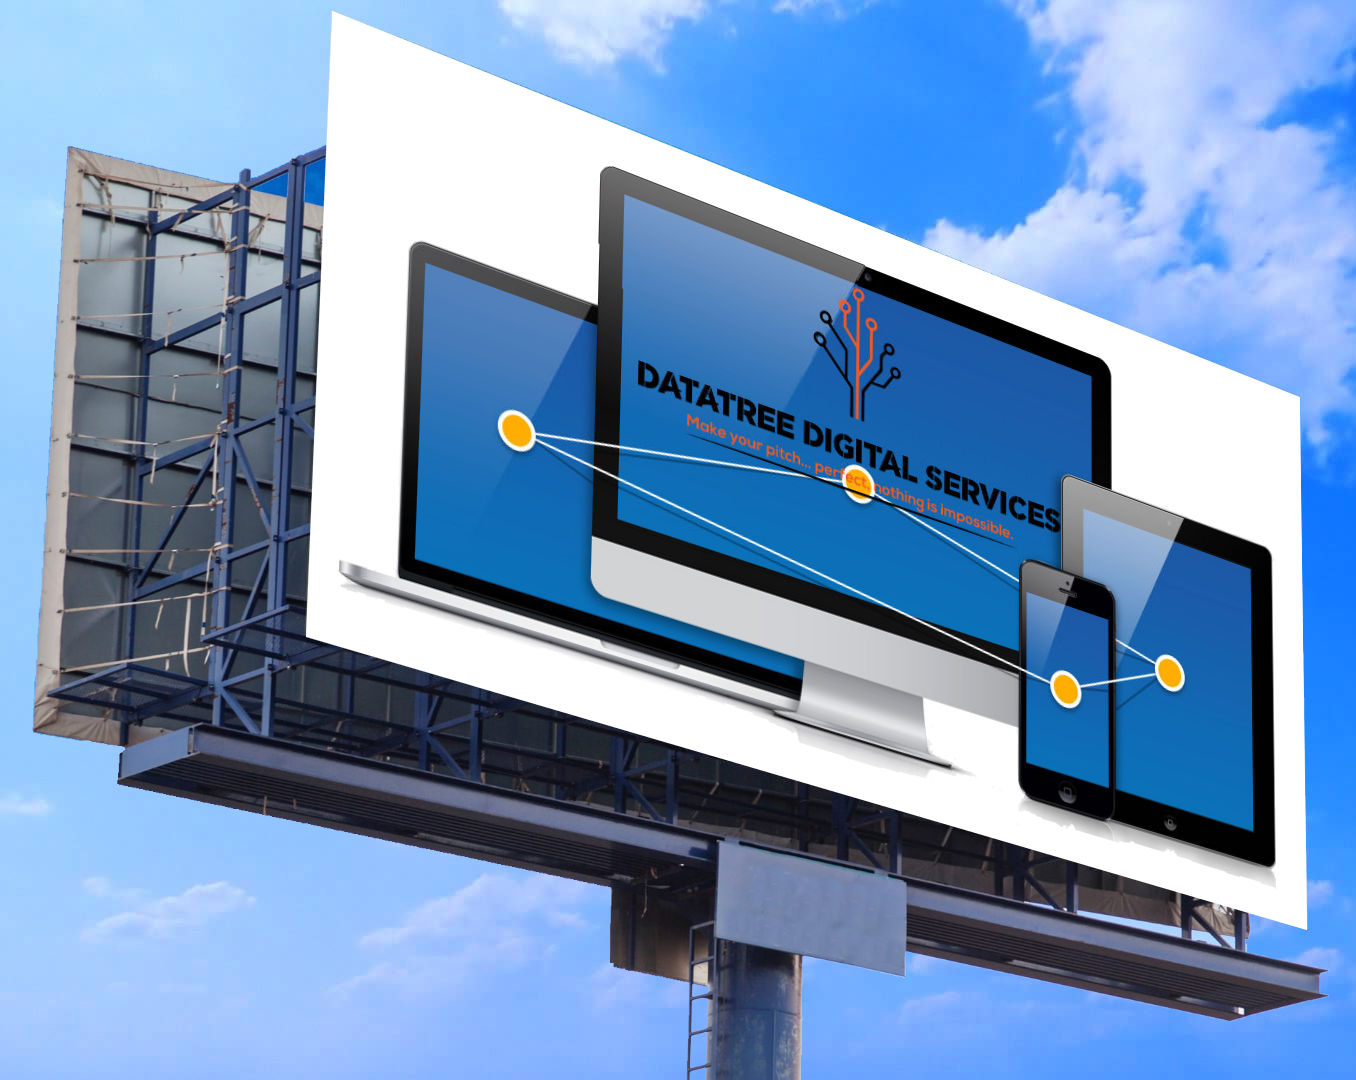 Billboard Datatree Digiotal Services